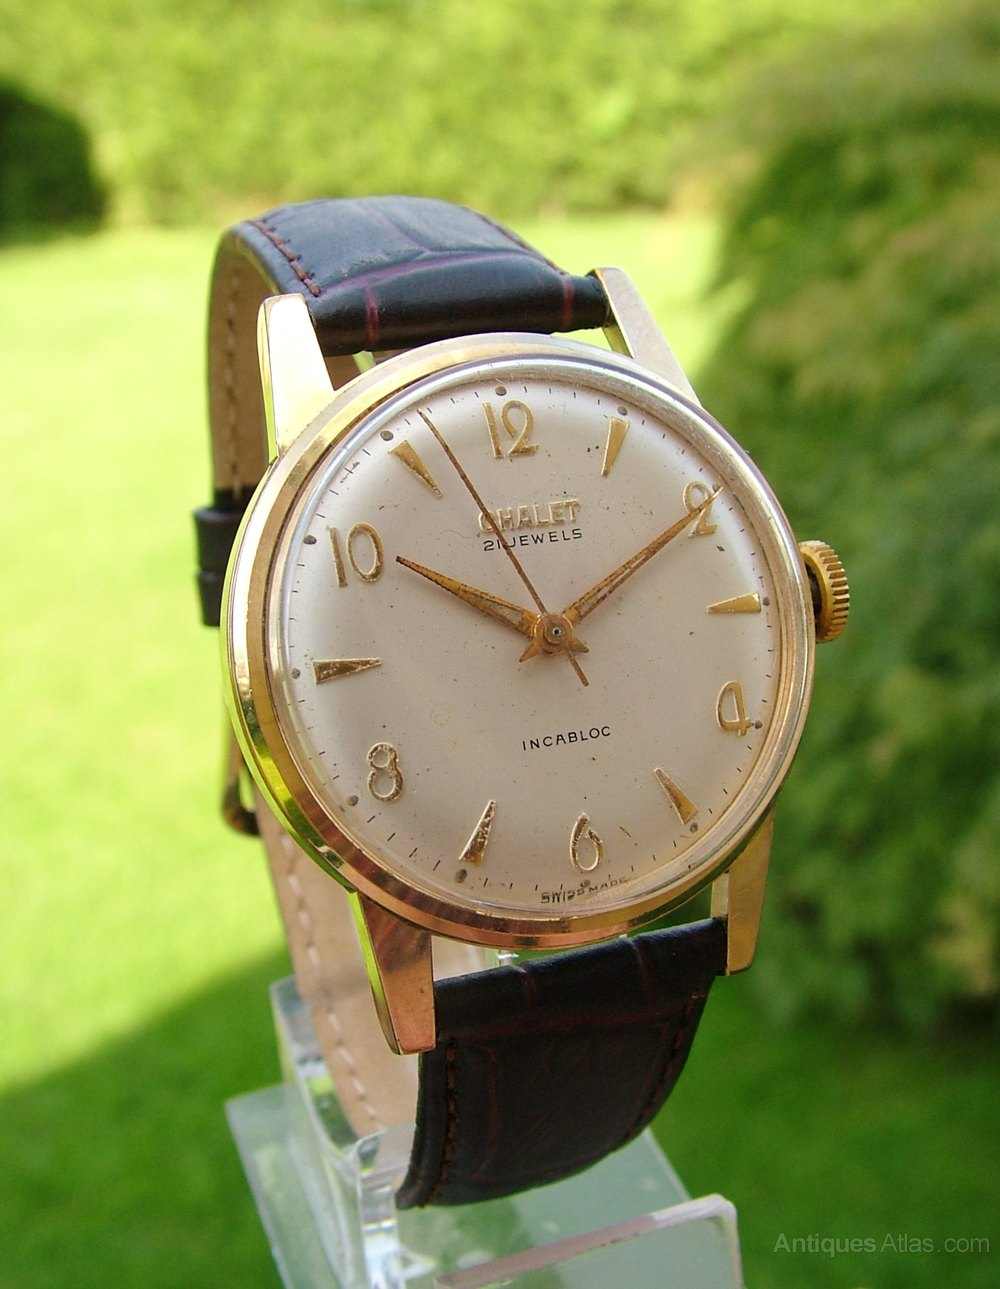 Antiques Atlas - Gents 1950s Chalet Hand Winding Wrist Watch